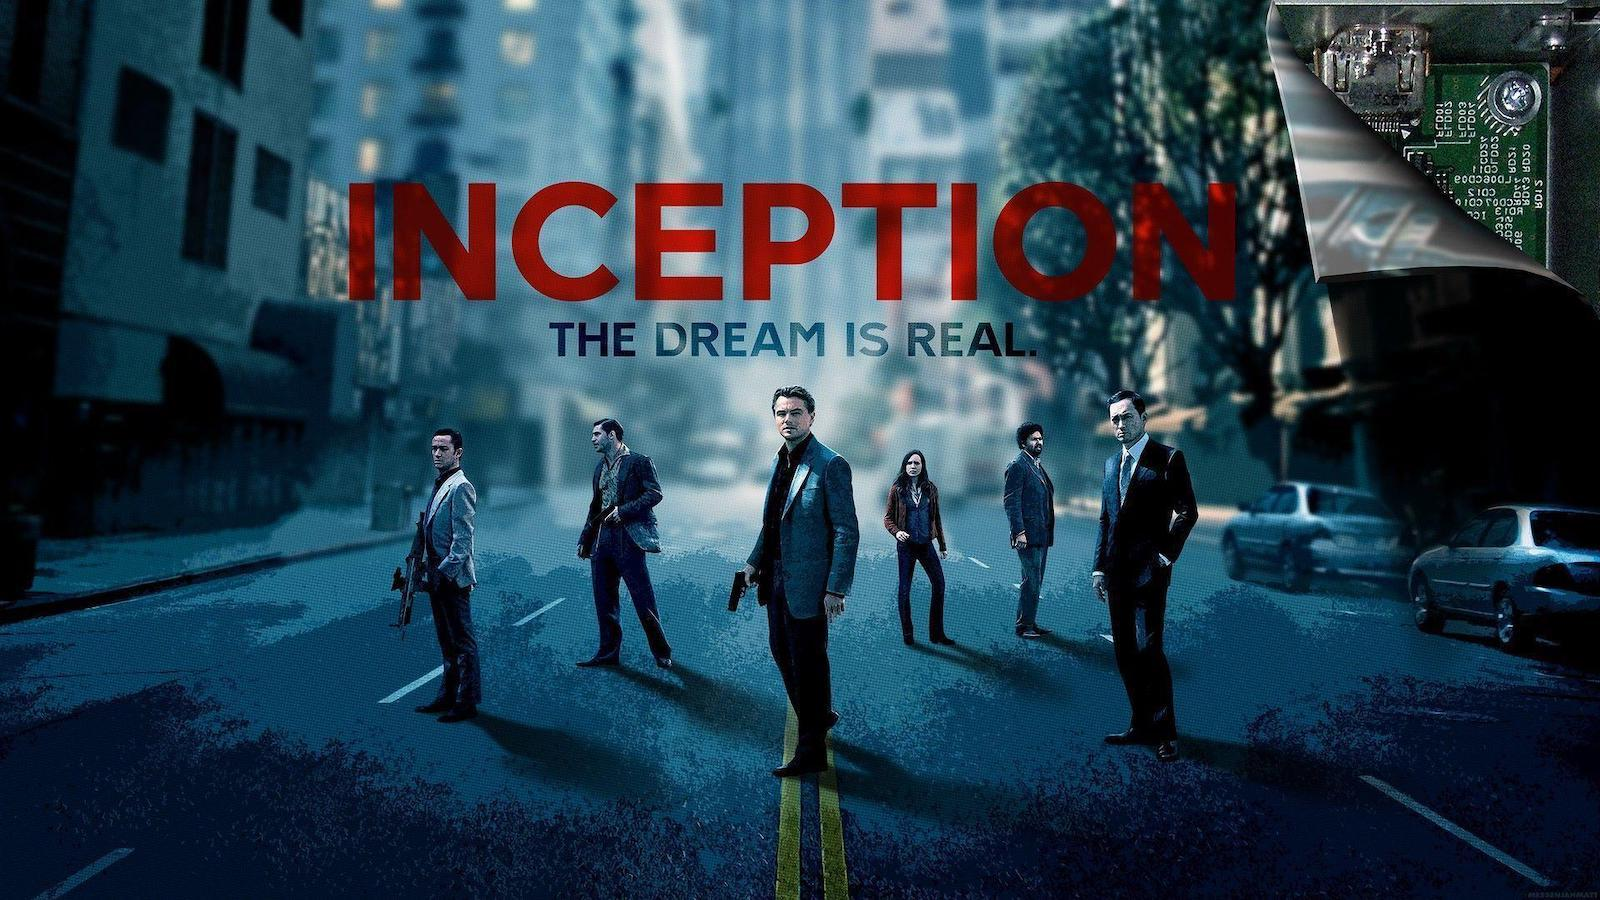 Inception Movie Poster - The Dream in Real